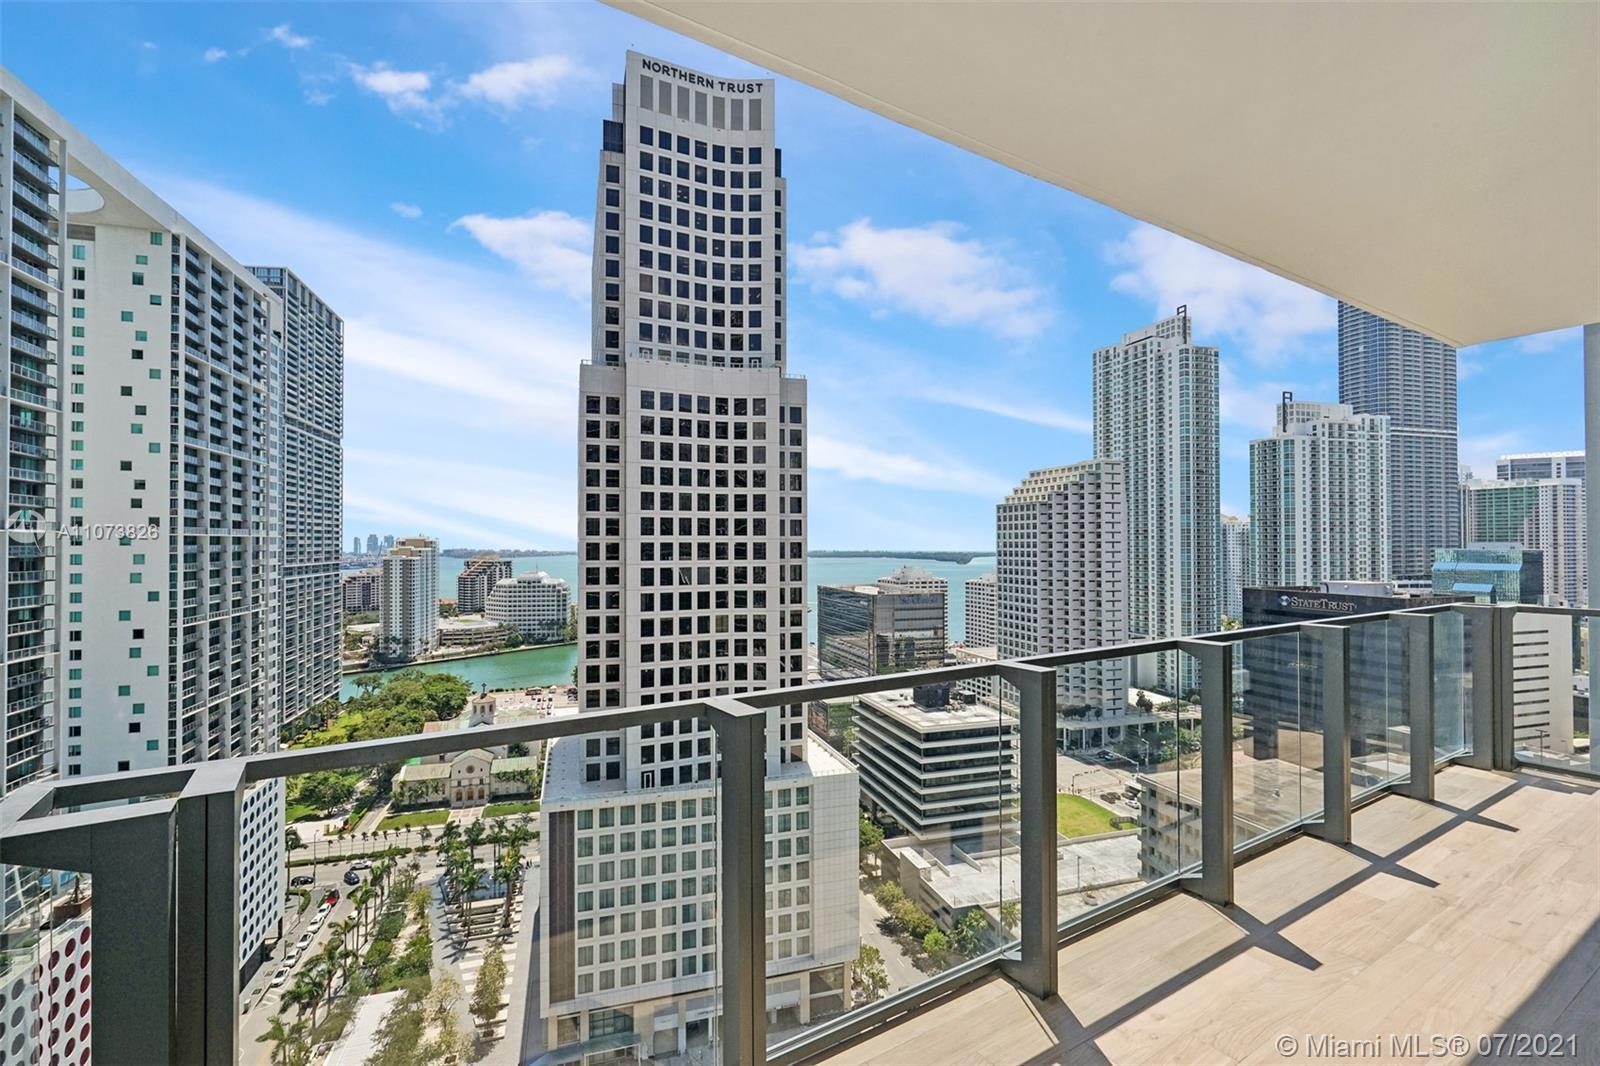 Residence is rented until May 31st for $5,000. Brickell City Centre is here and you get the chance t